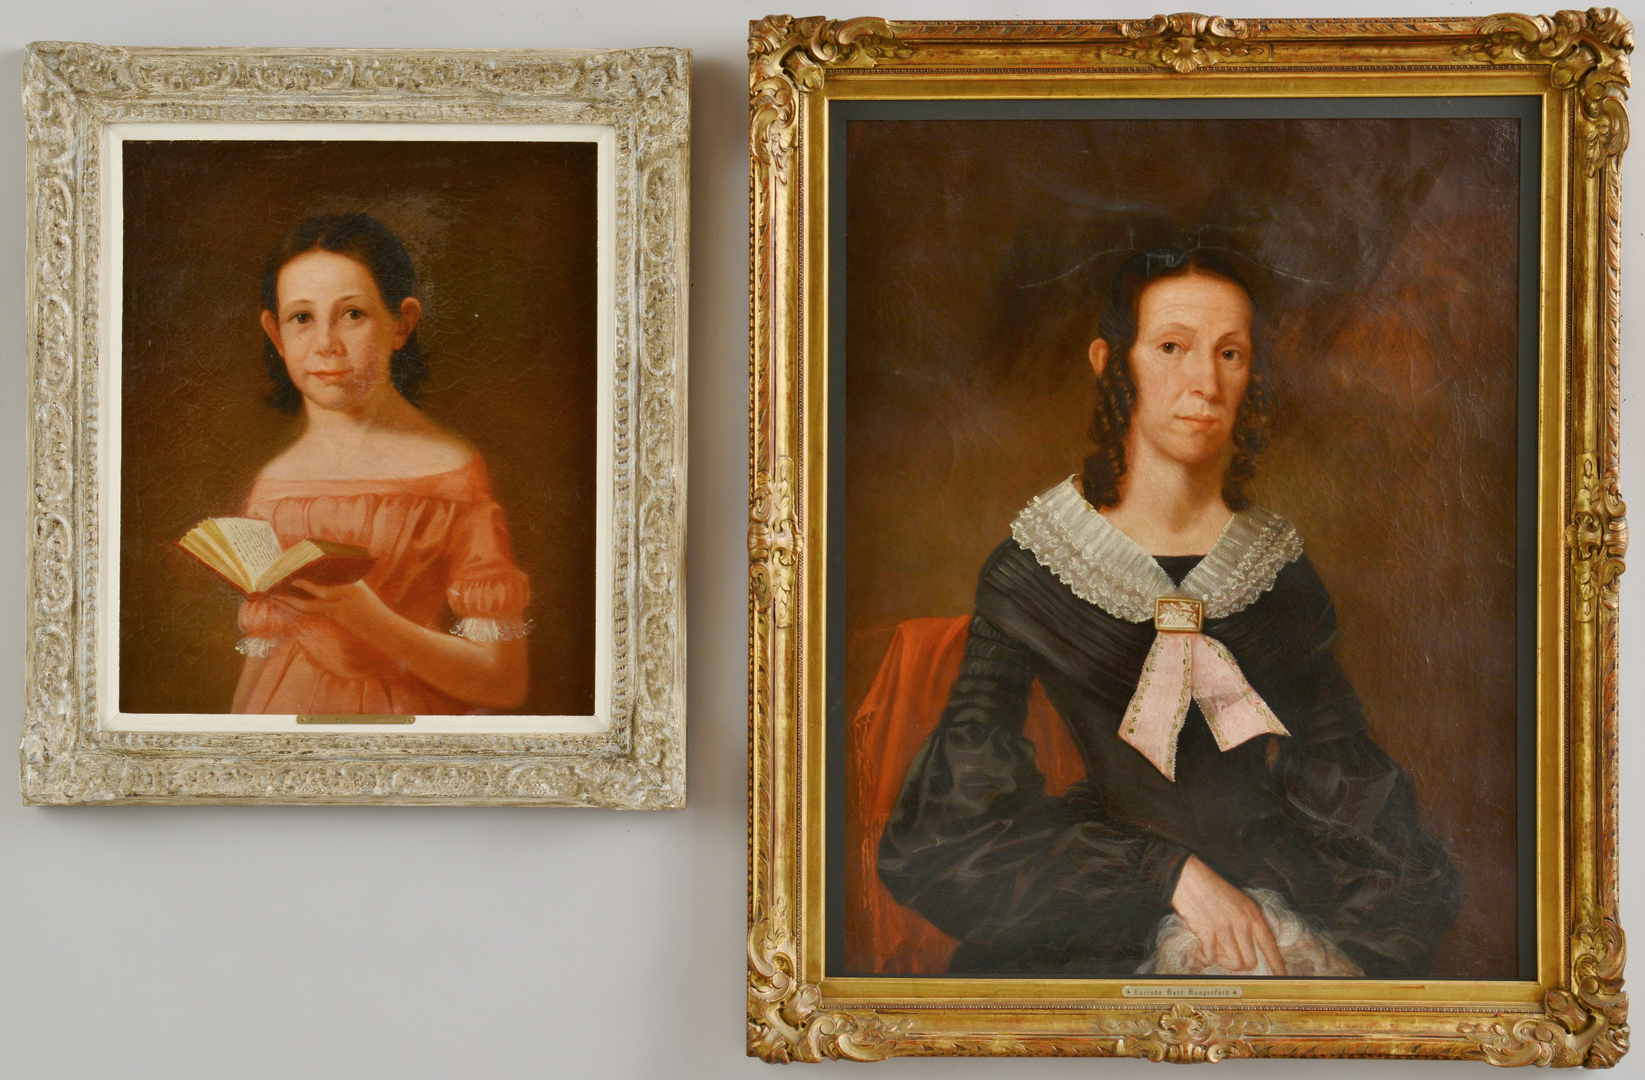 Lot 3088182: Pr. Oil on Canvas Portraits, Hungerford family